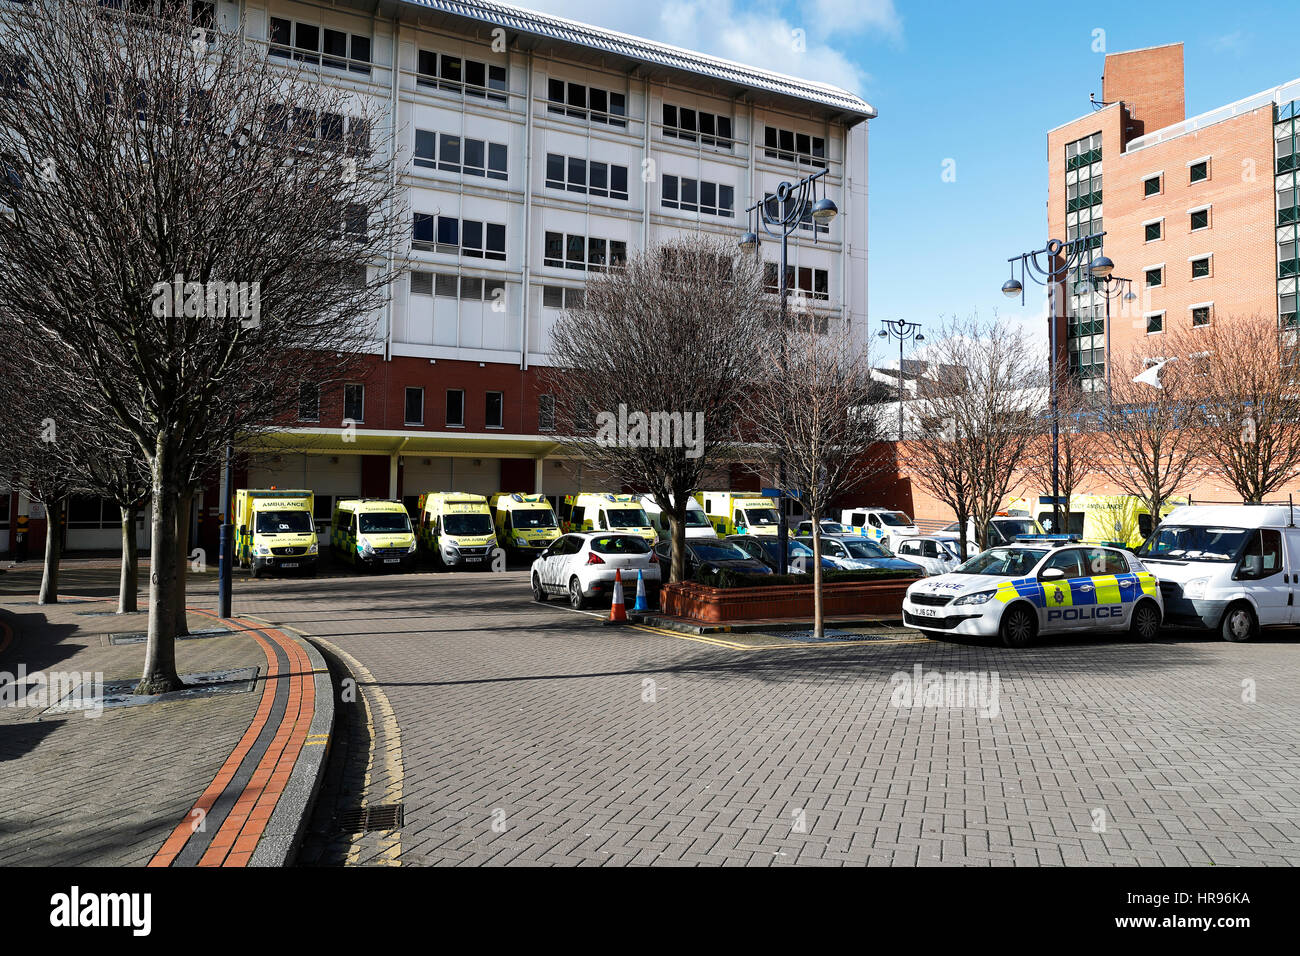 Accident and Emergency department building Leeds General Infirmary with Ambulance's standing outside. - Stock Image